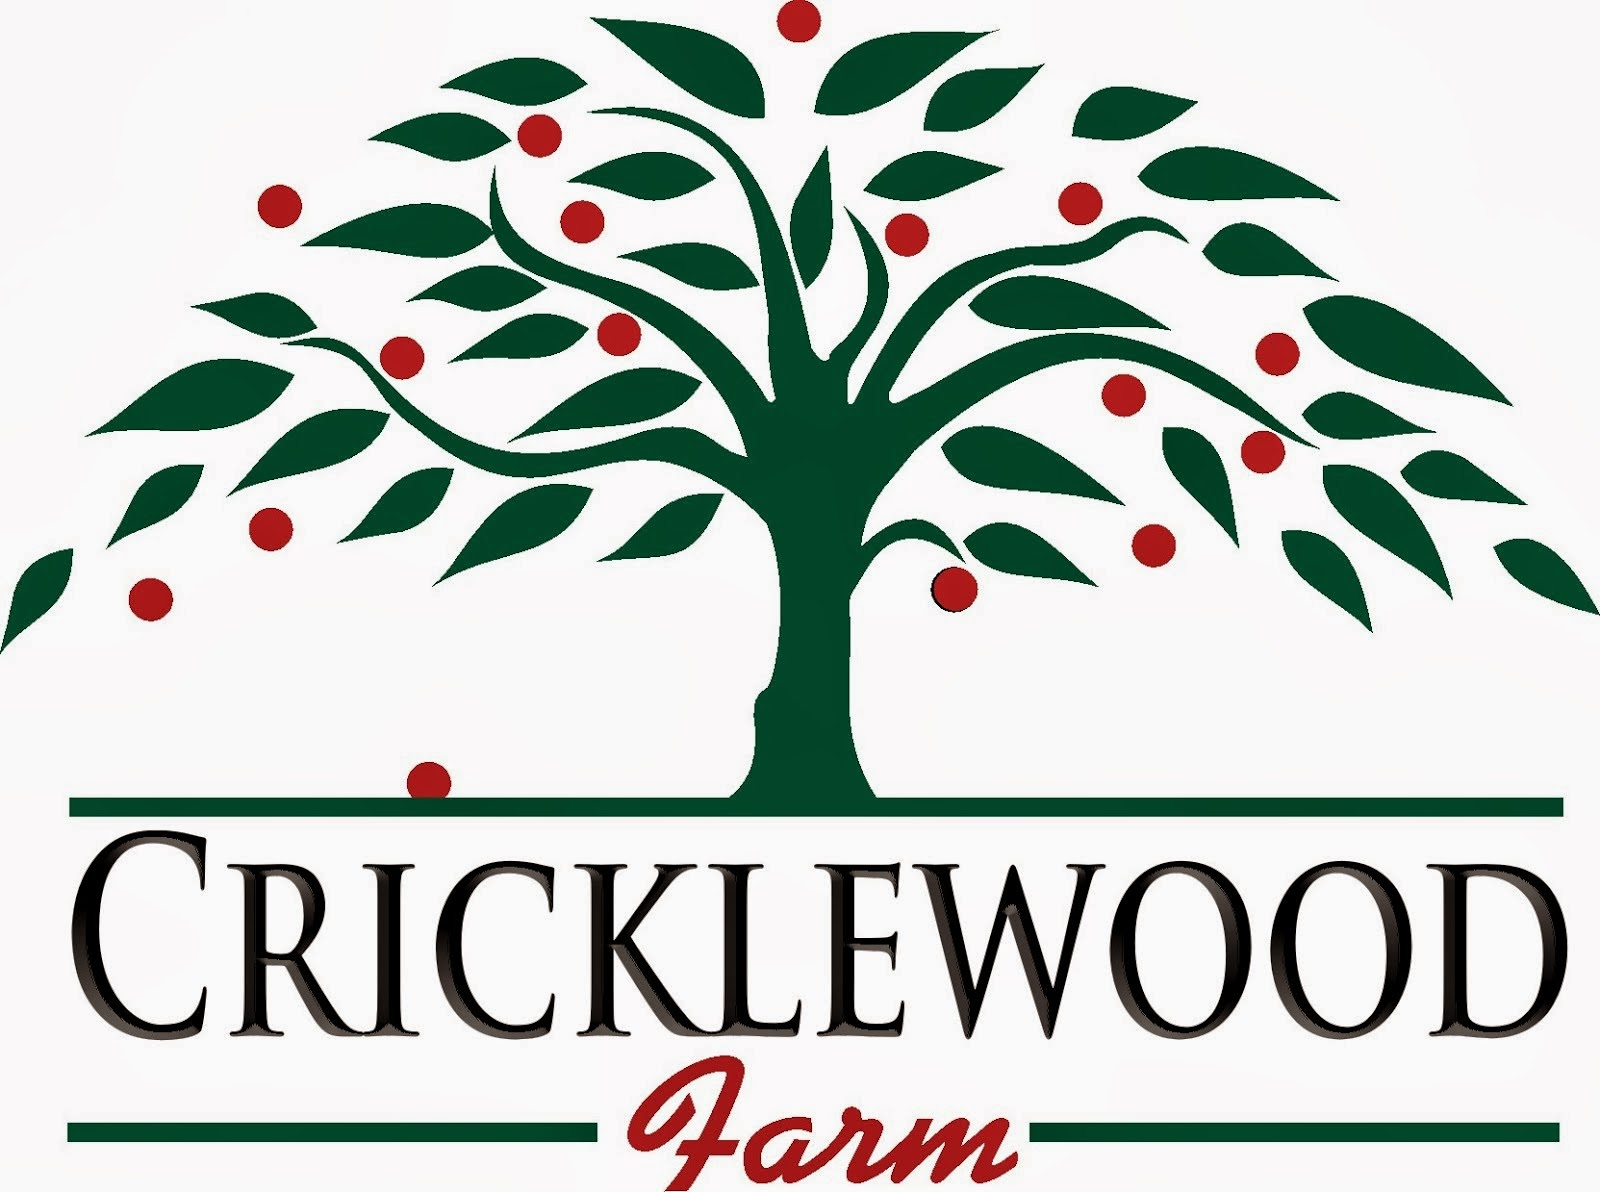 Cricklewood Farm